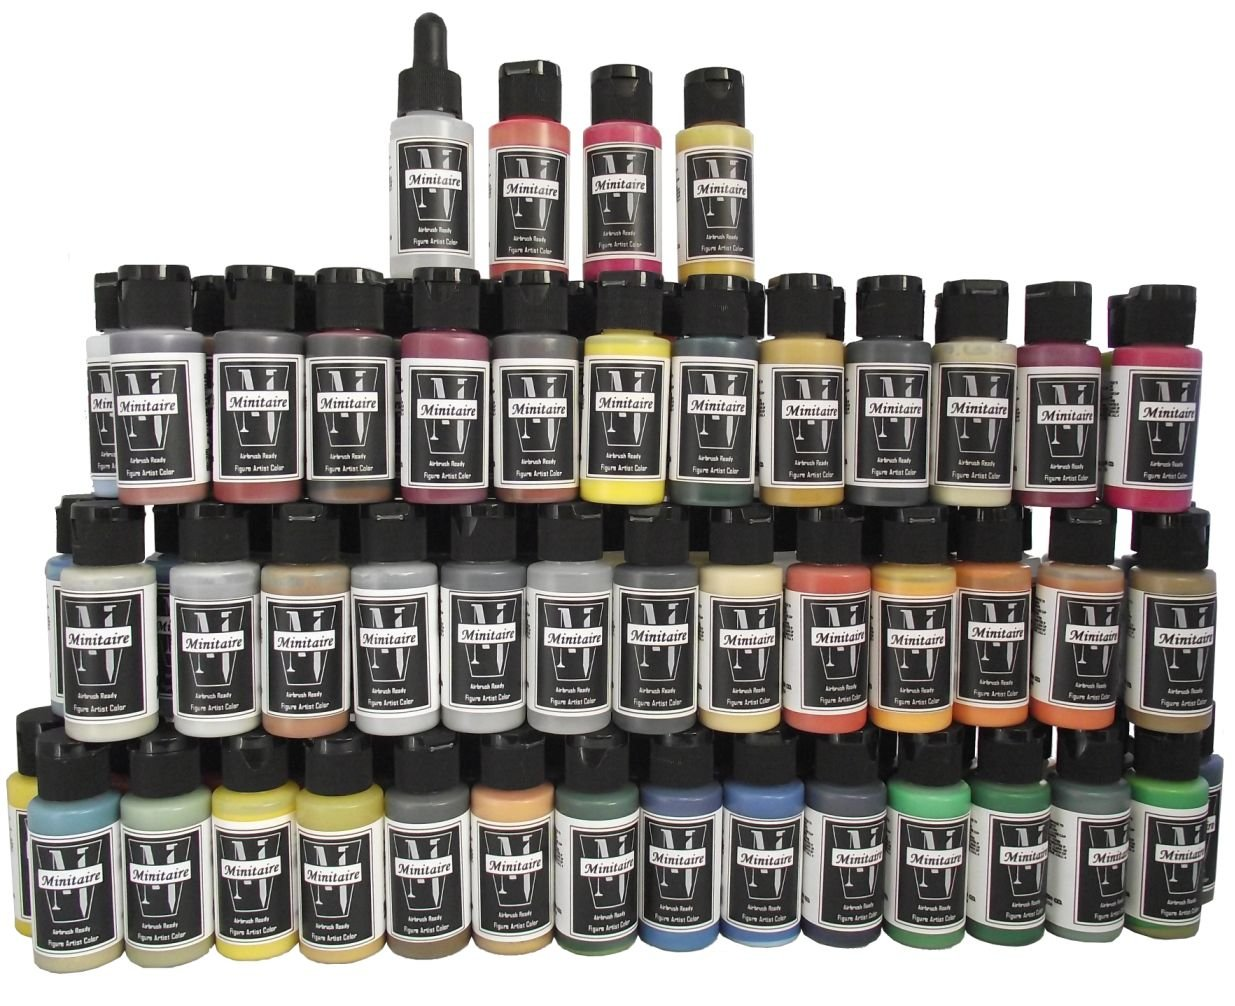 Badger Air-Brush Company Minitaire Color Paint Set with Color Coat/Paint Retarder by Badger Air-Brush Company